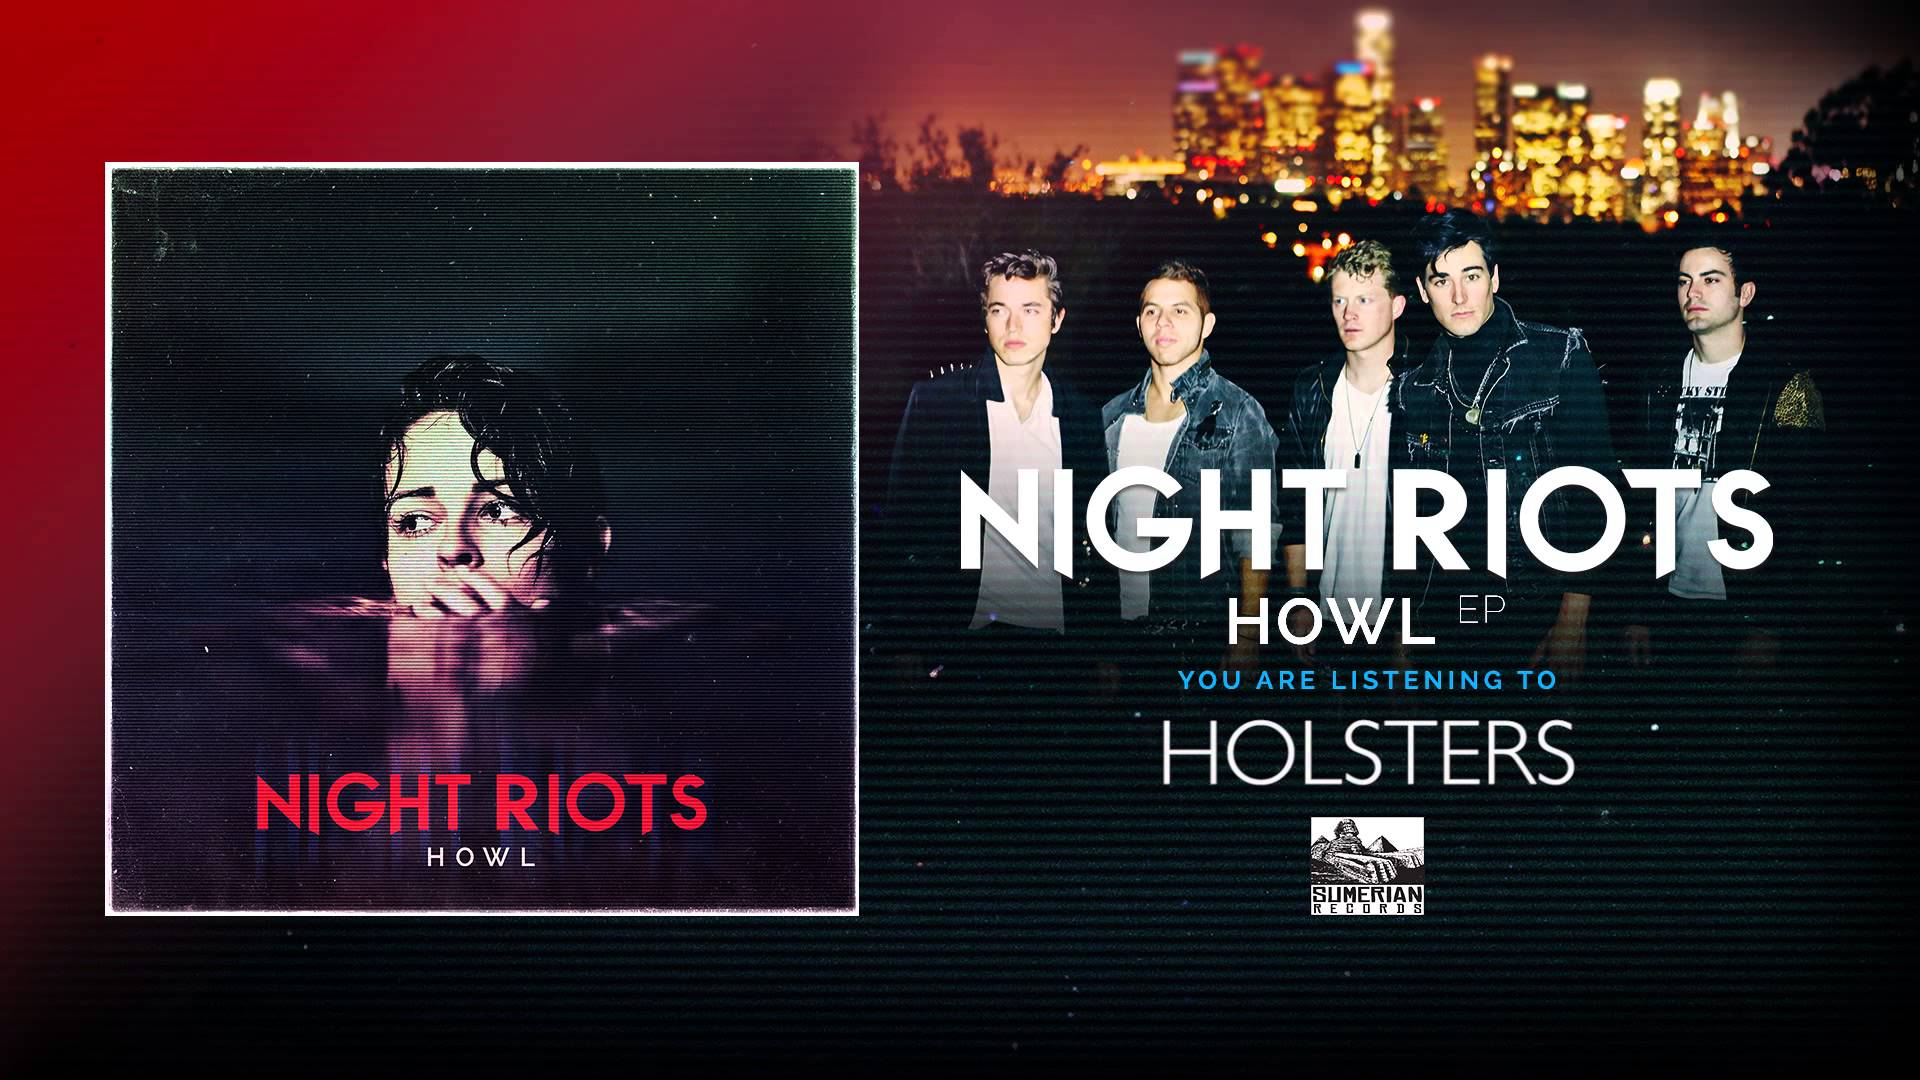 NIGHT RIOTS - Holsters